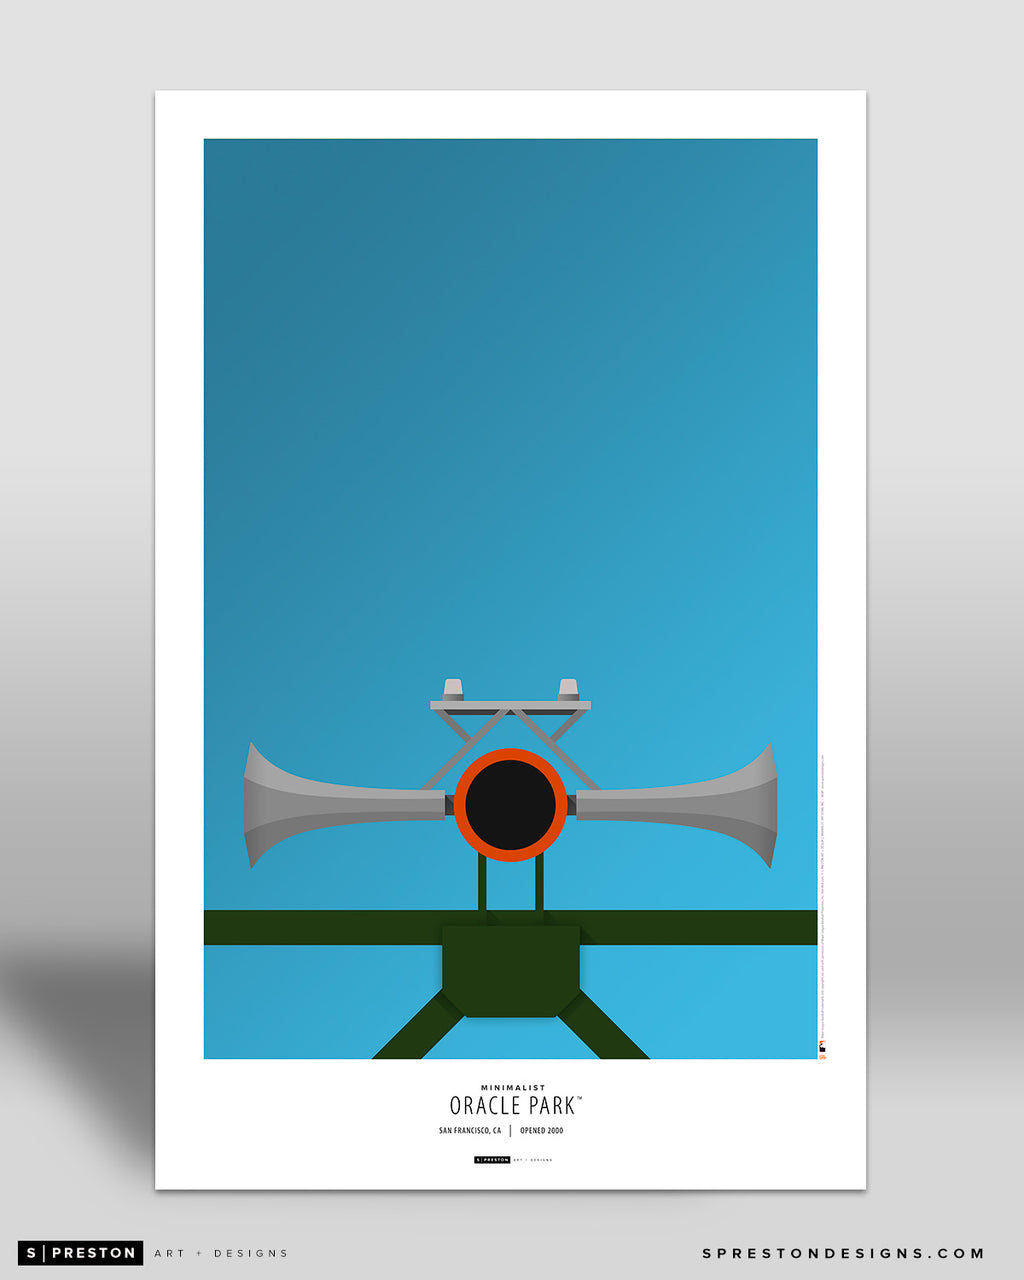 Minimalist Oracle Park Poster Print San Francisco Giants - S Preston